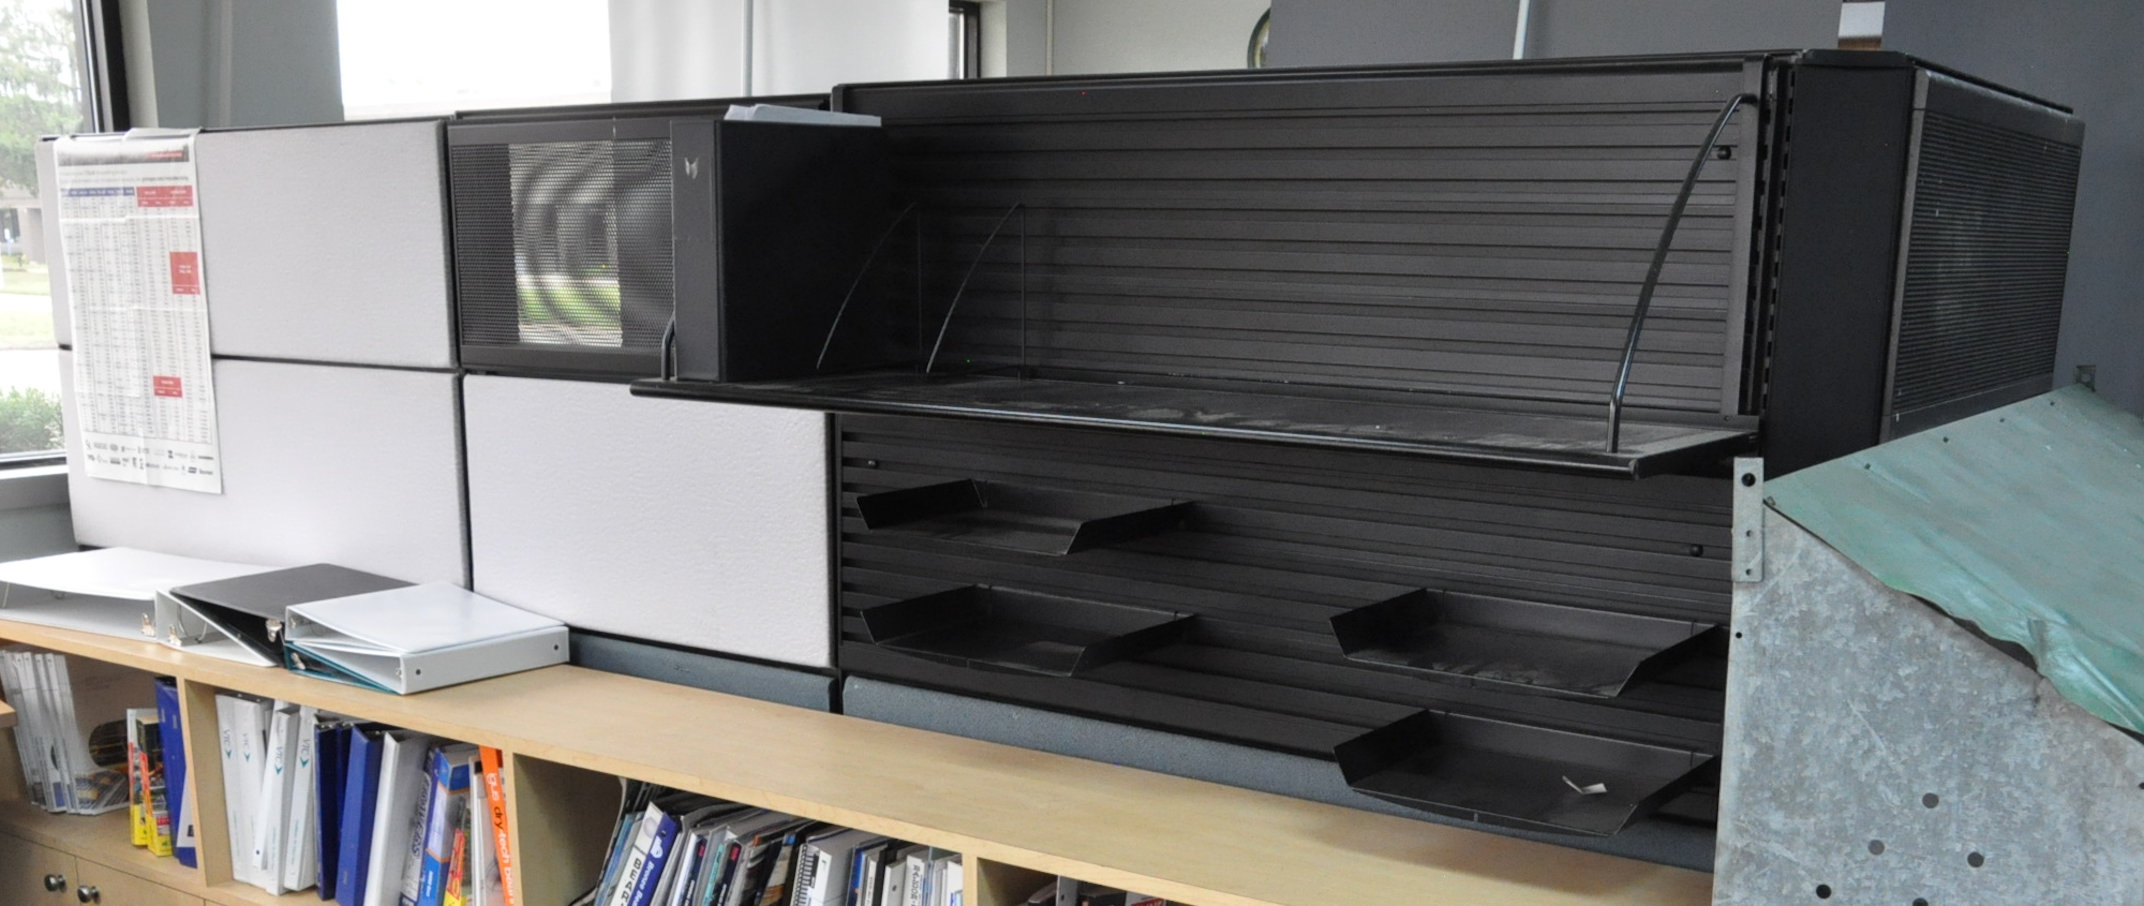 Cubical Partition Work System and Cubicle Panels in (1) Room, (Furniture Not Included) - Image 3 of 3